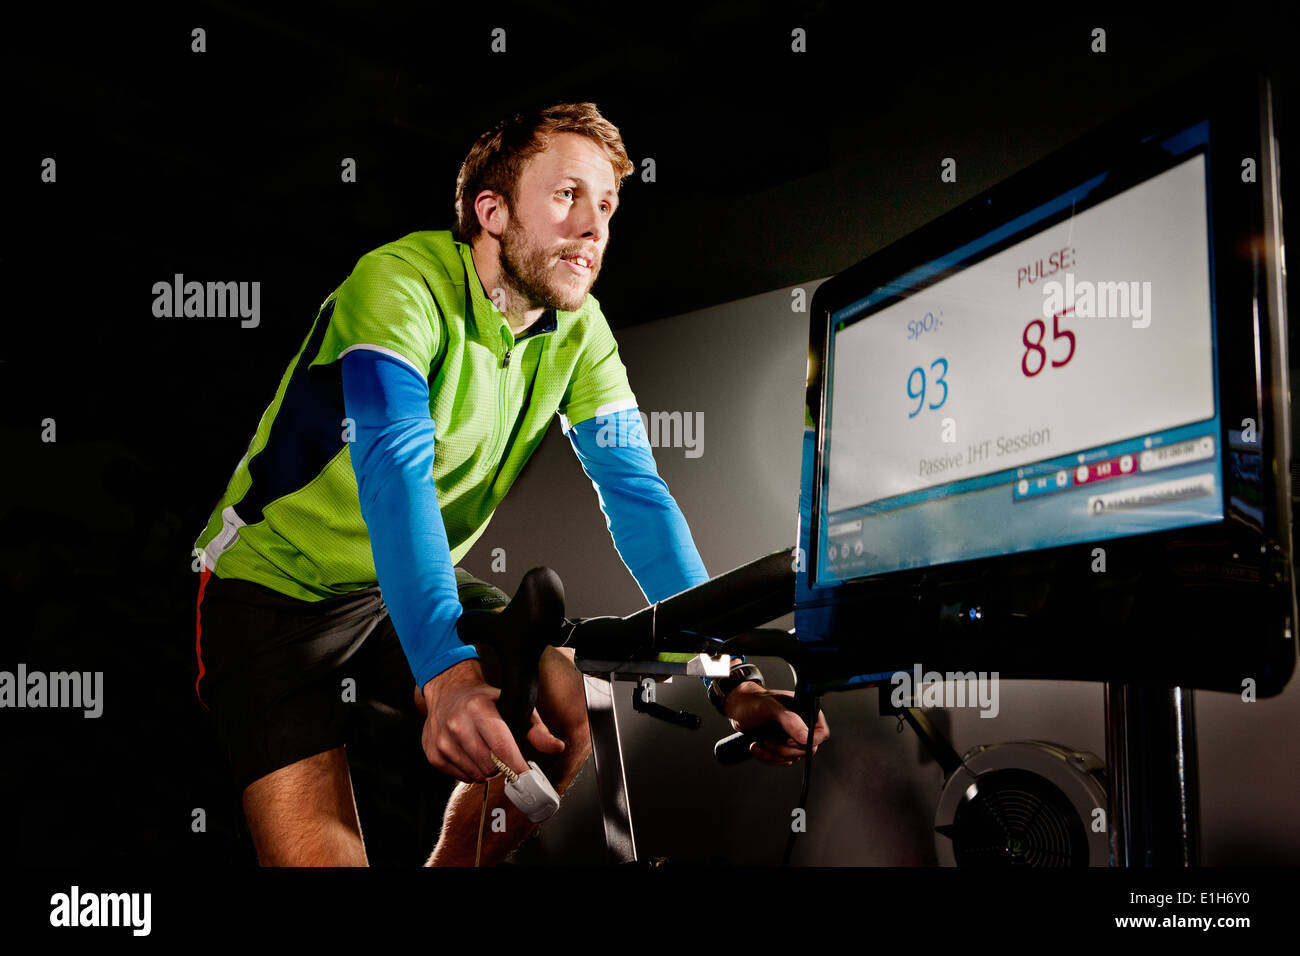 Young man on gym exercise cycle in altitude centre - Stock Image